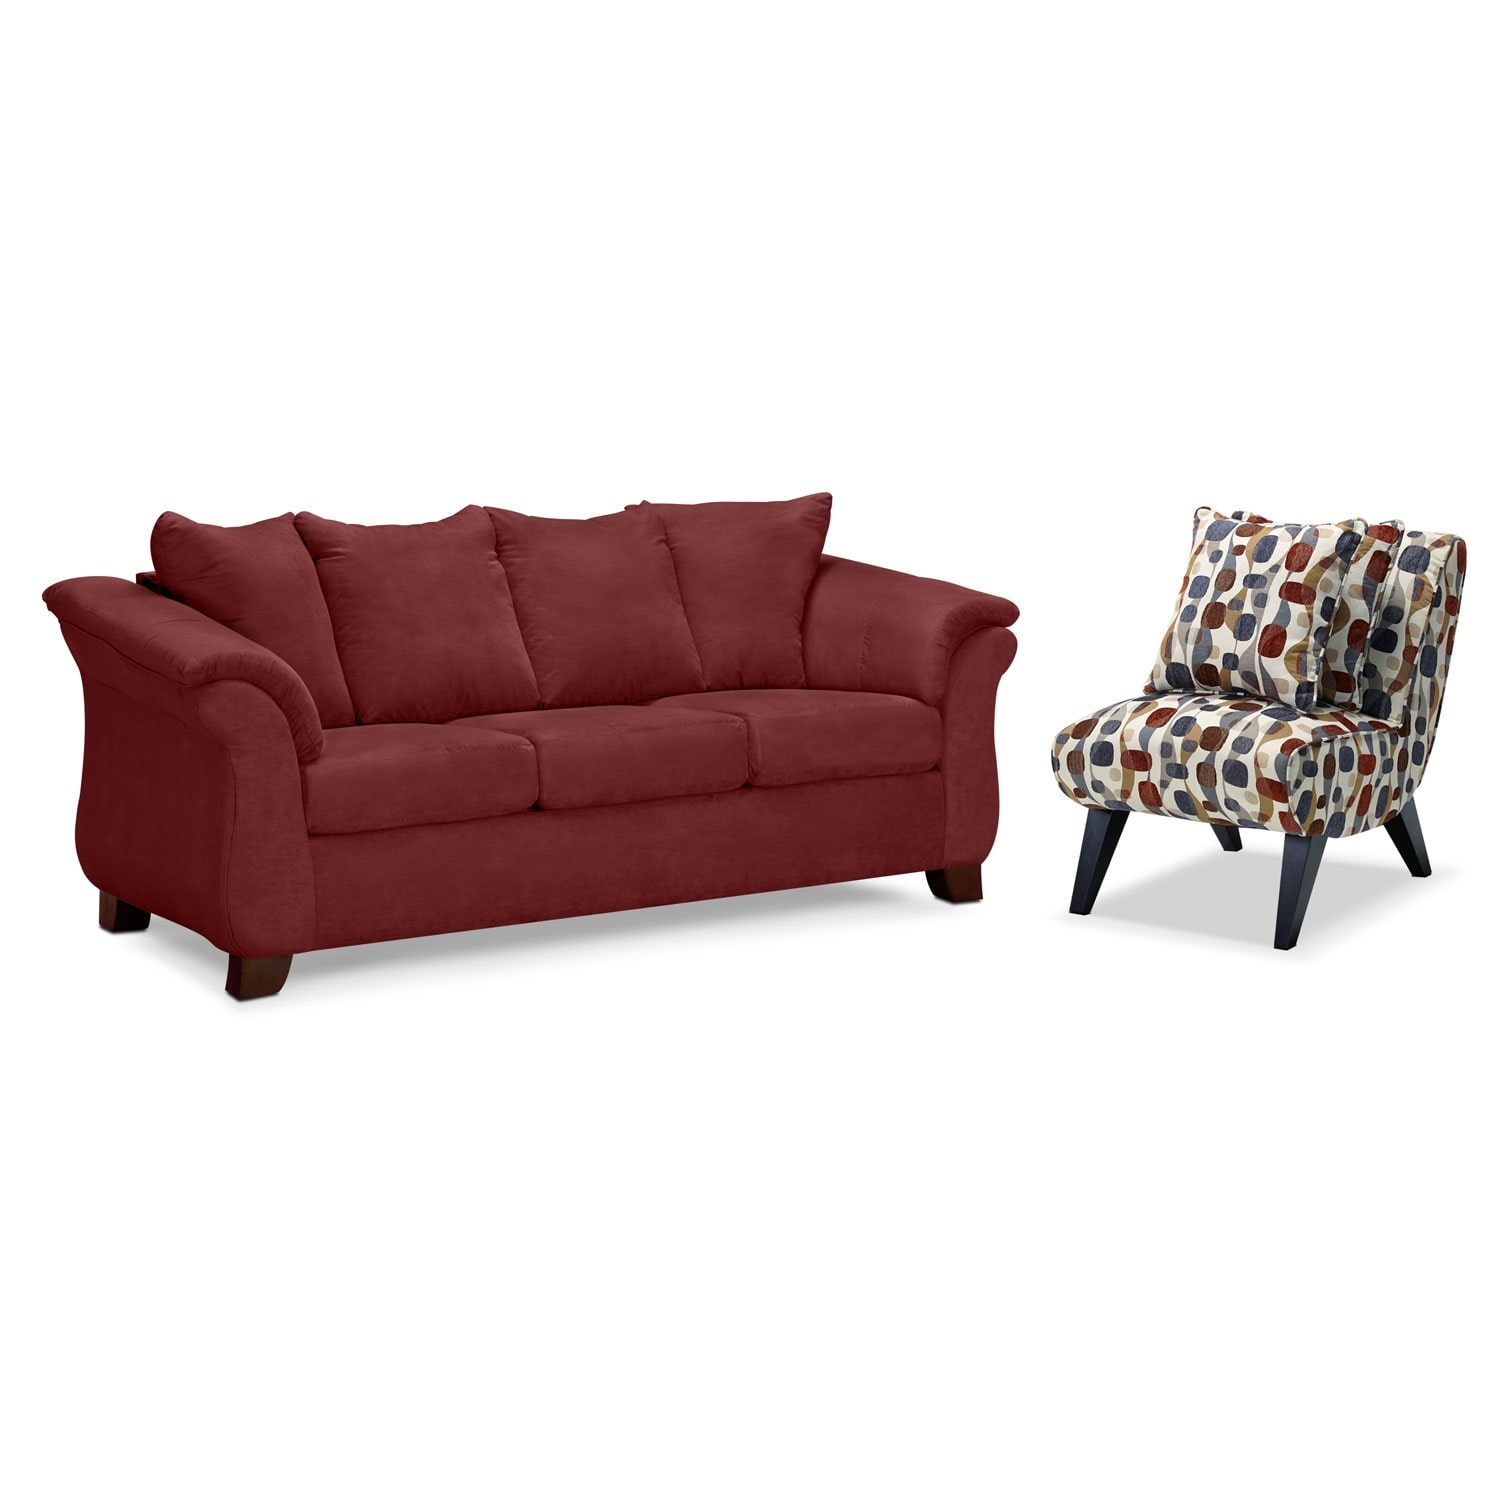 Living Room Furniture - Adrian Red 2 Pc. Living Room w/ Accent Chair